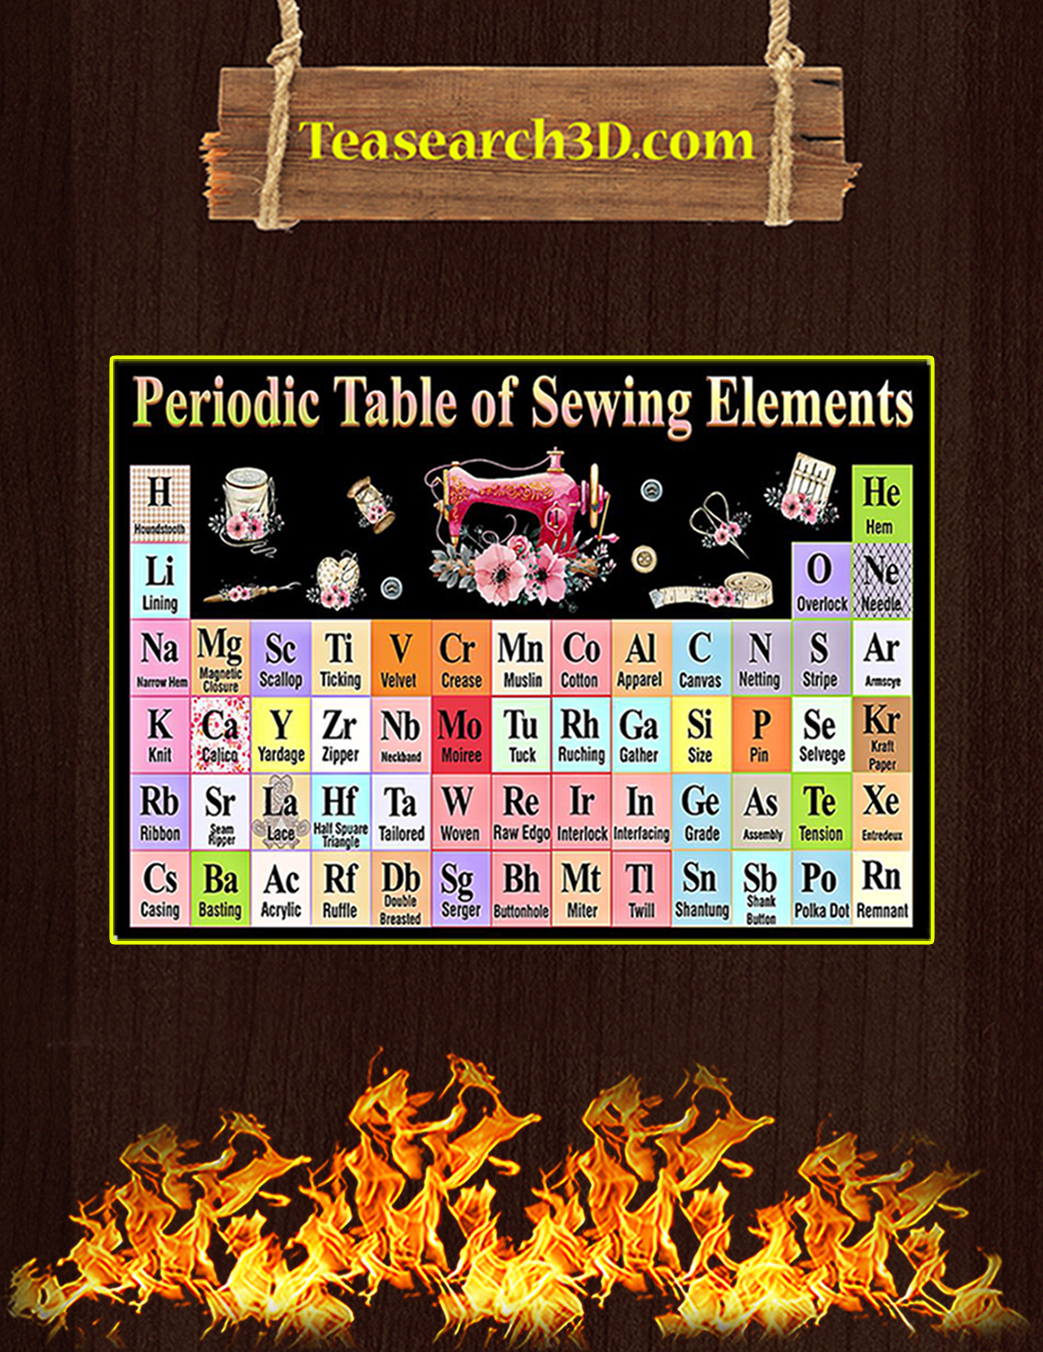 Periodic table of sewing elements poster A1